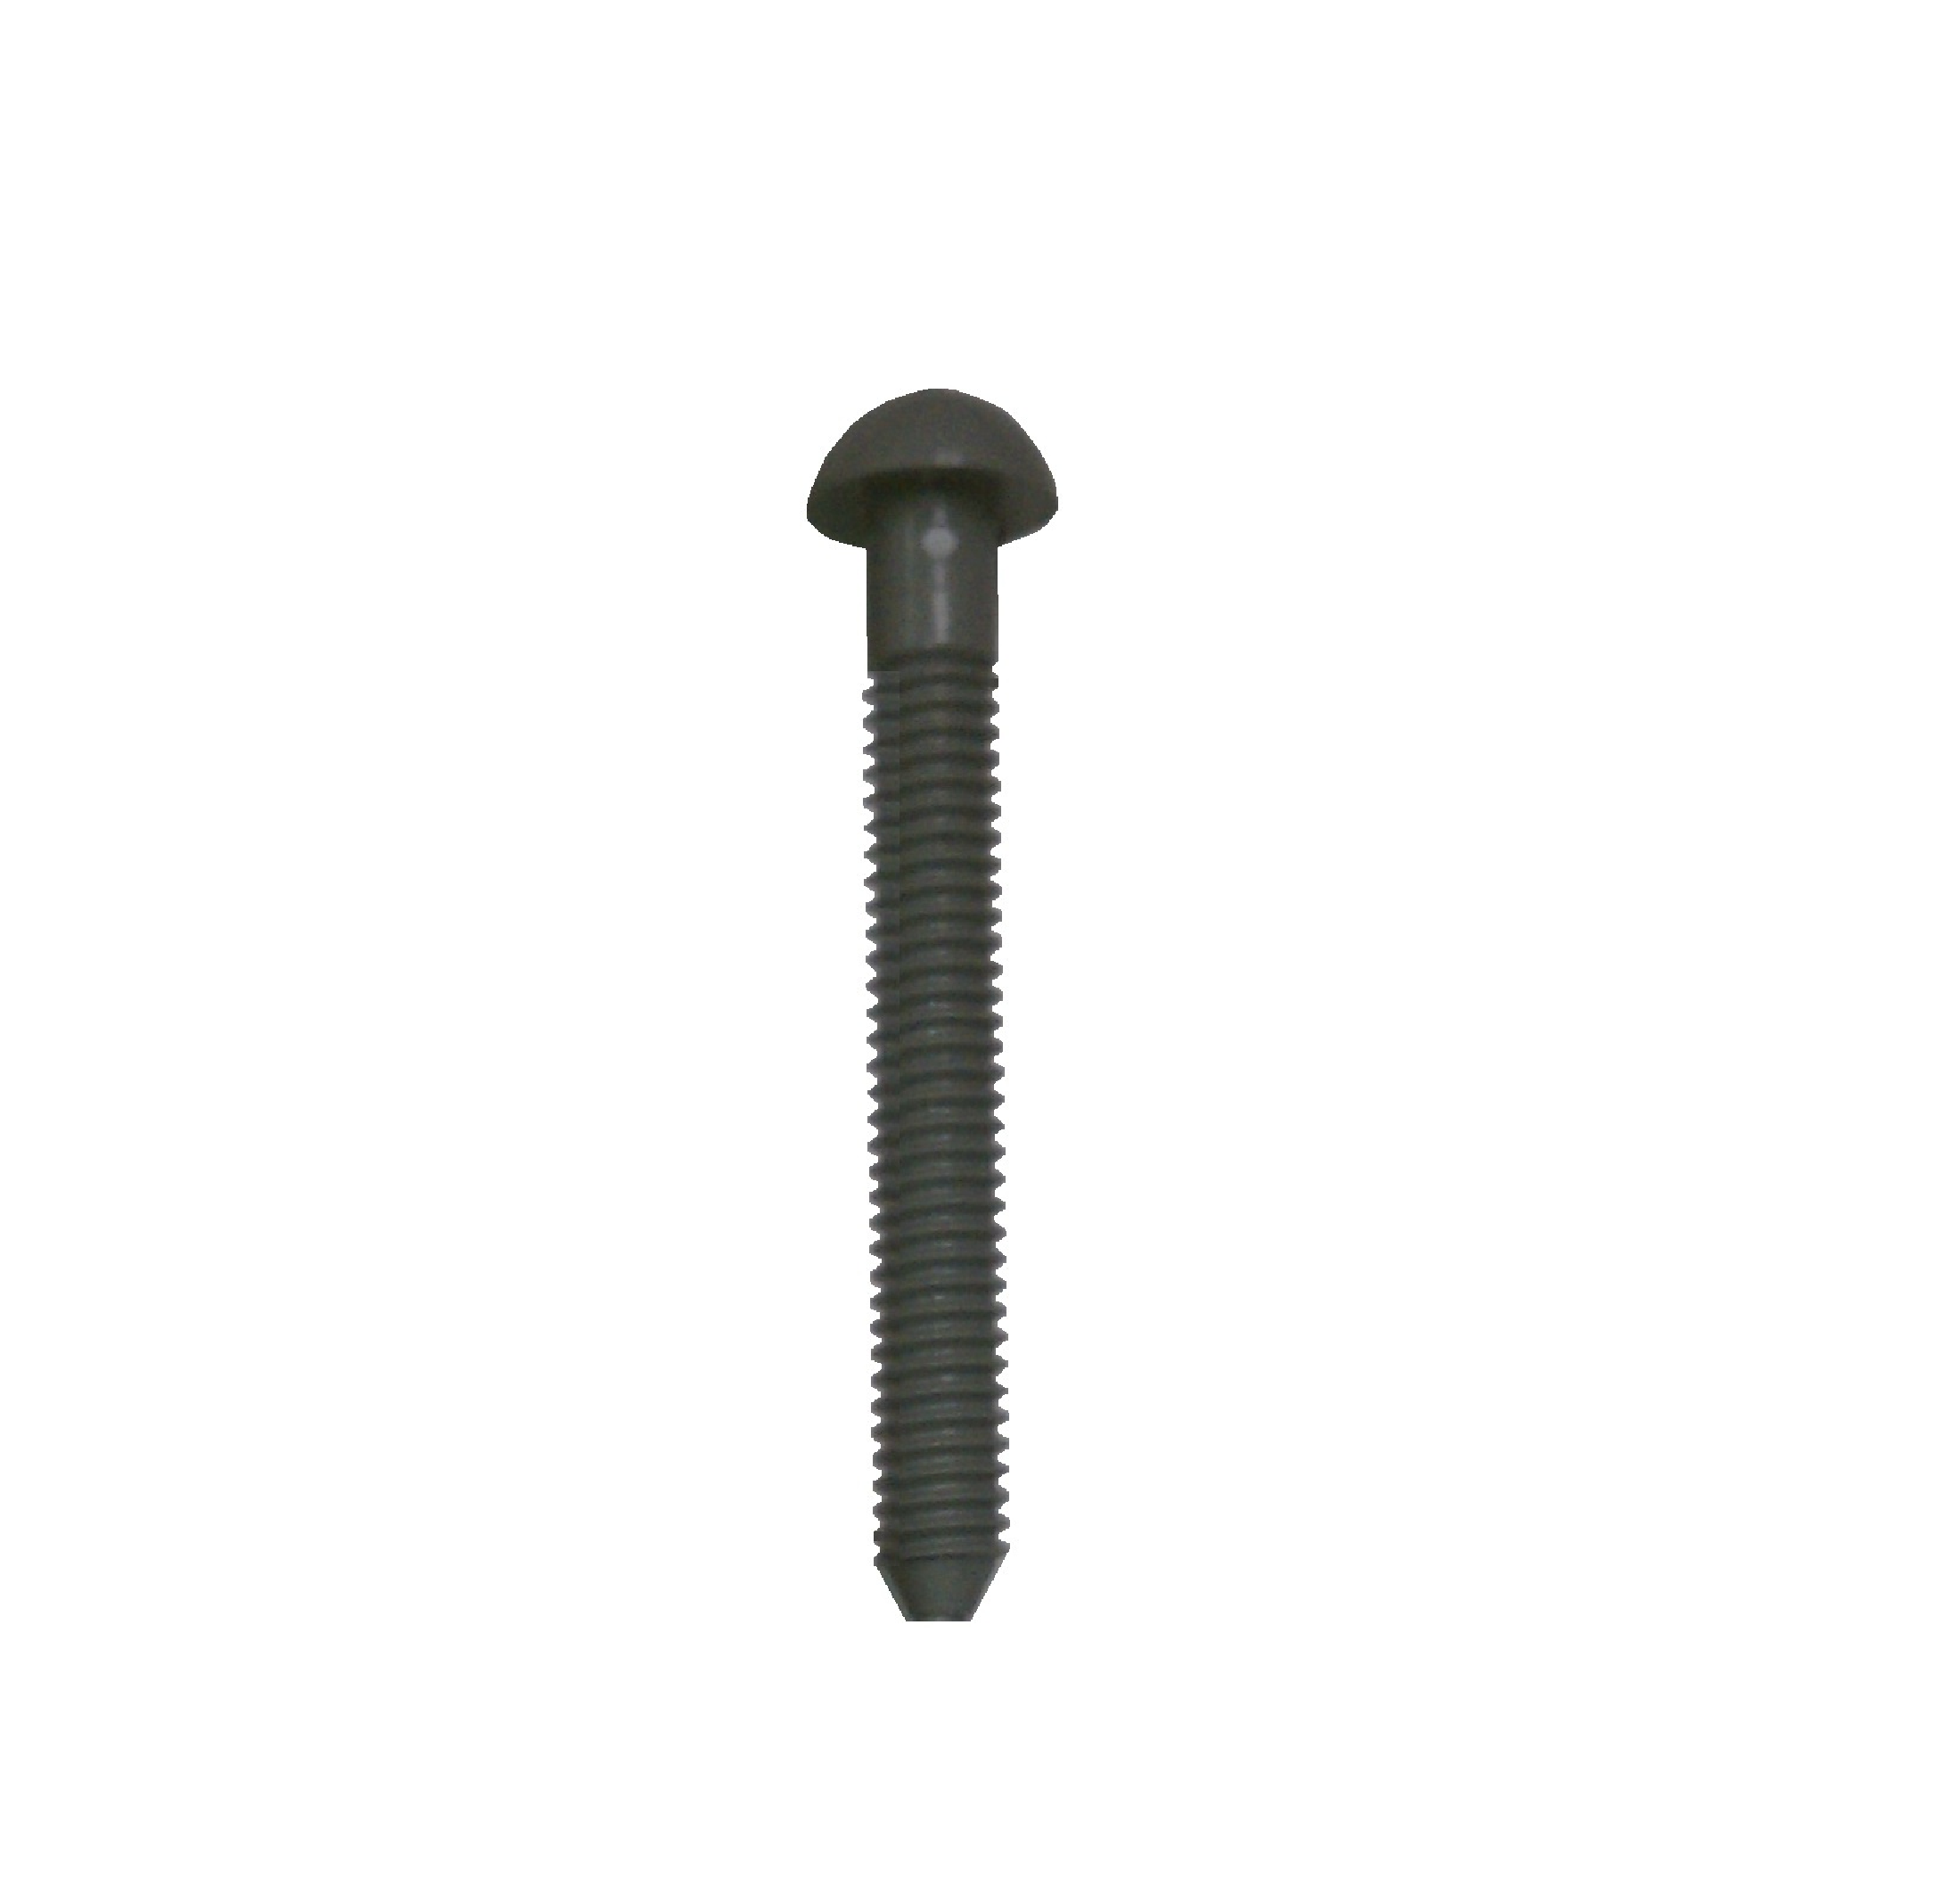 "2"" torx screw, plastic torx screw"